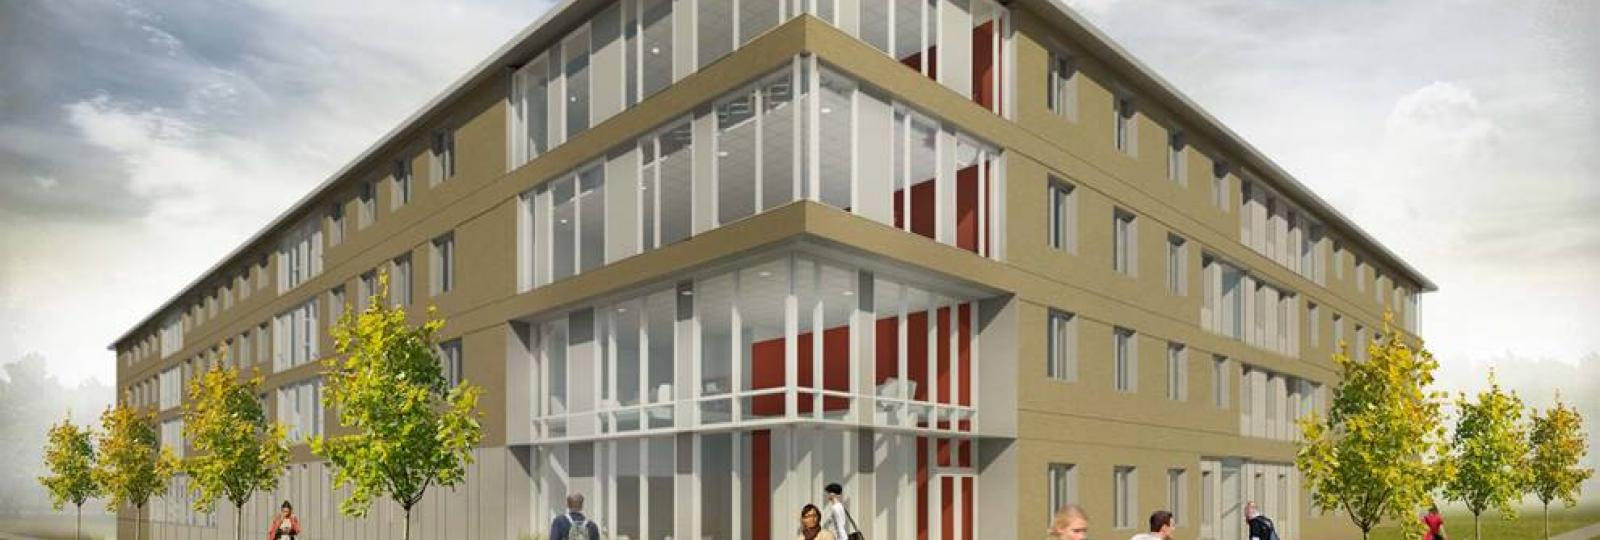 East Campus Residence Hall Architectural Drawing